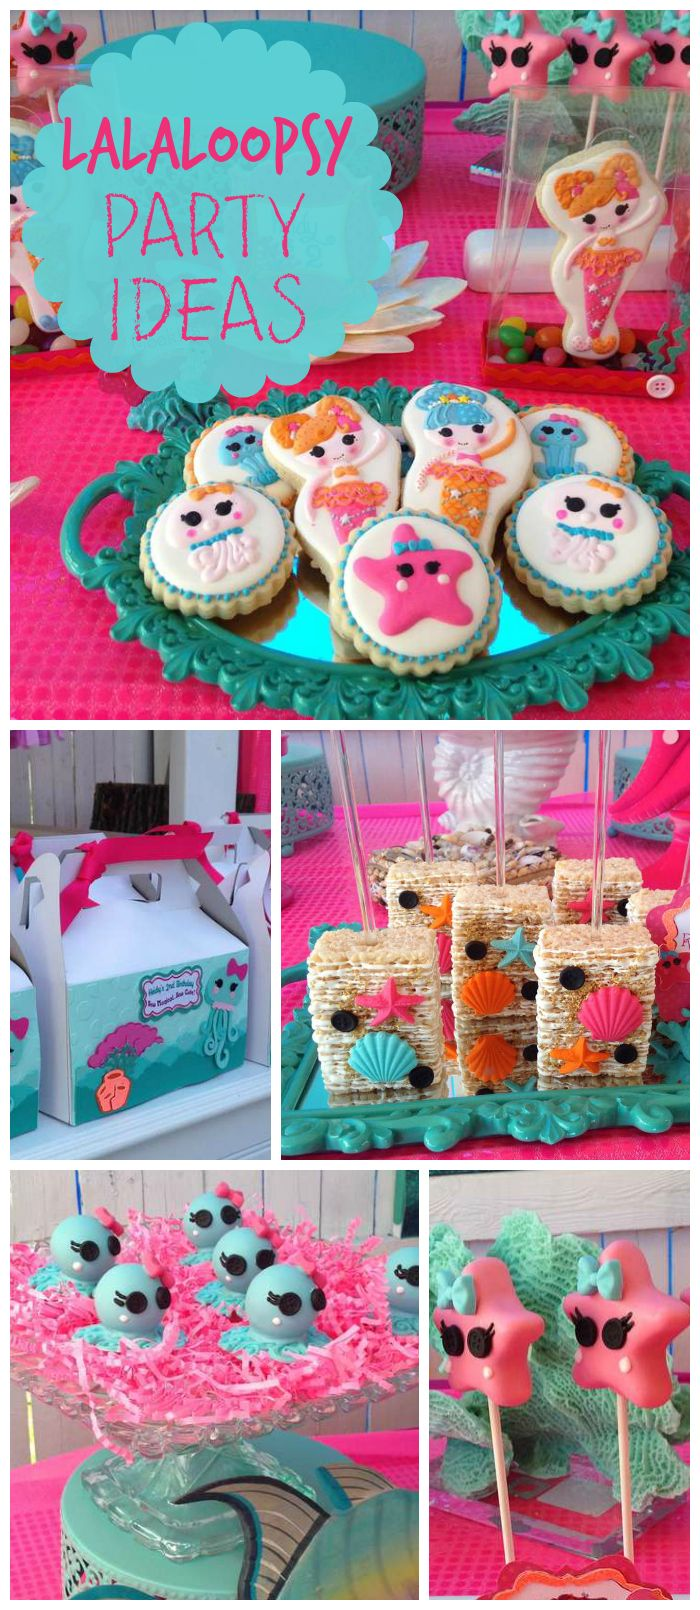 99 best Lalaloopsy party images on Pinterest | Lalaloopsy party ...